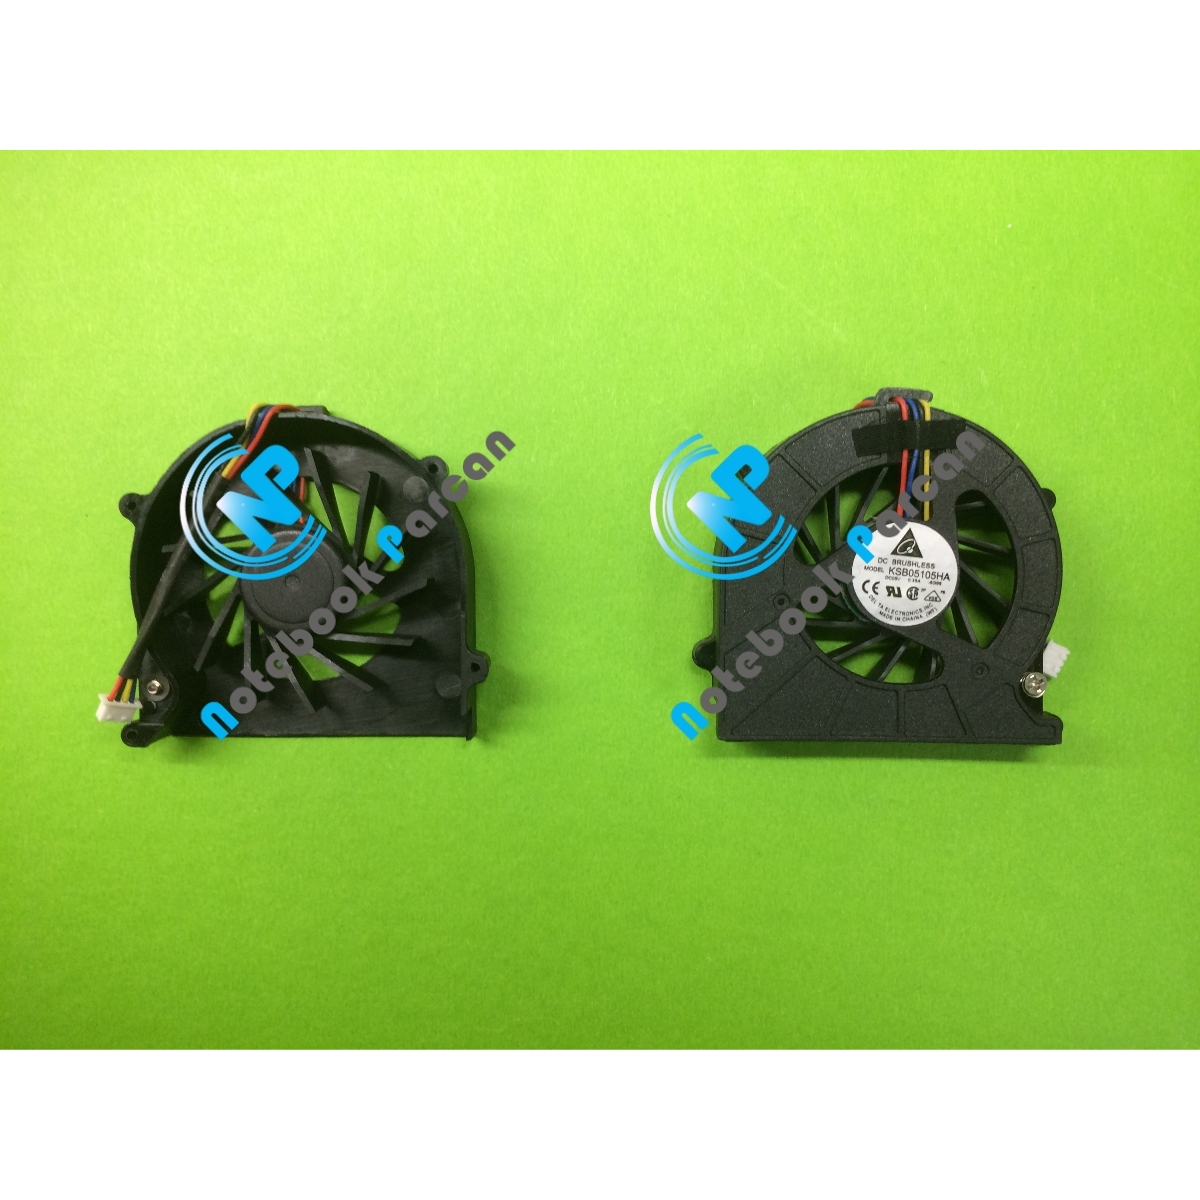 Toshiba KSB05105HA Fan 4 Pin